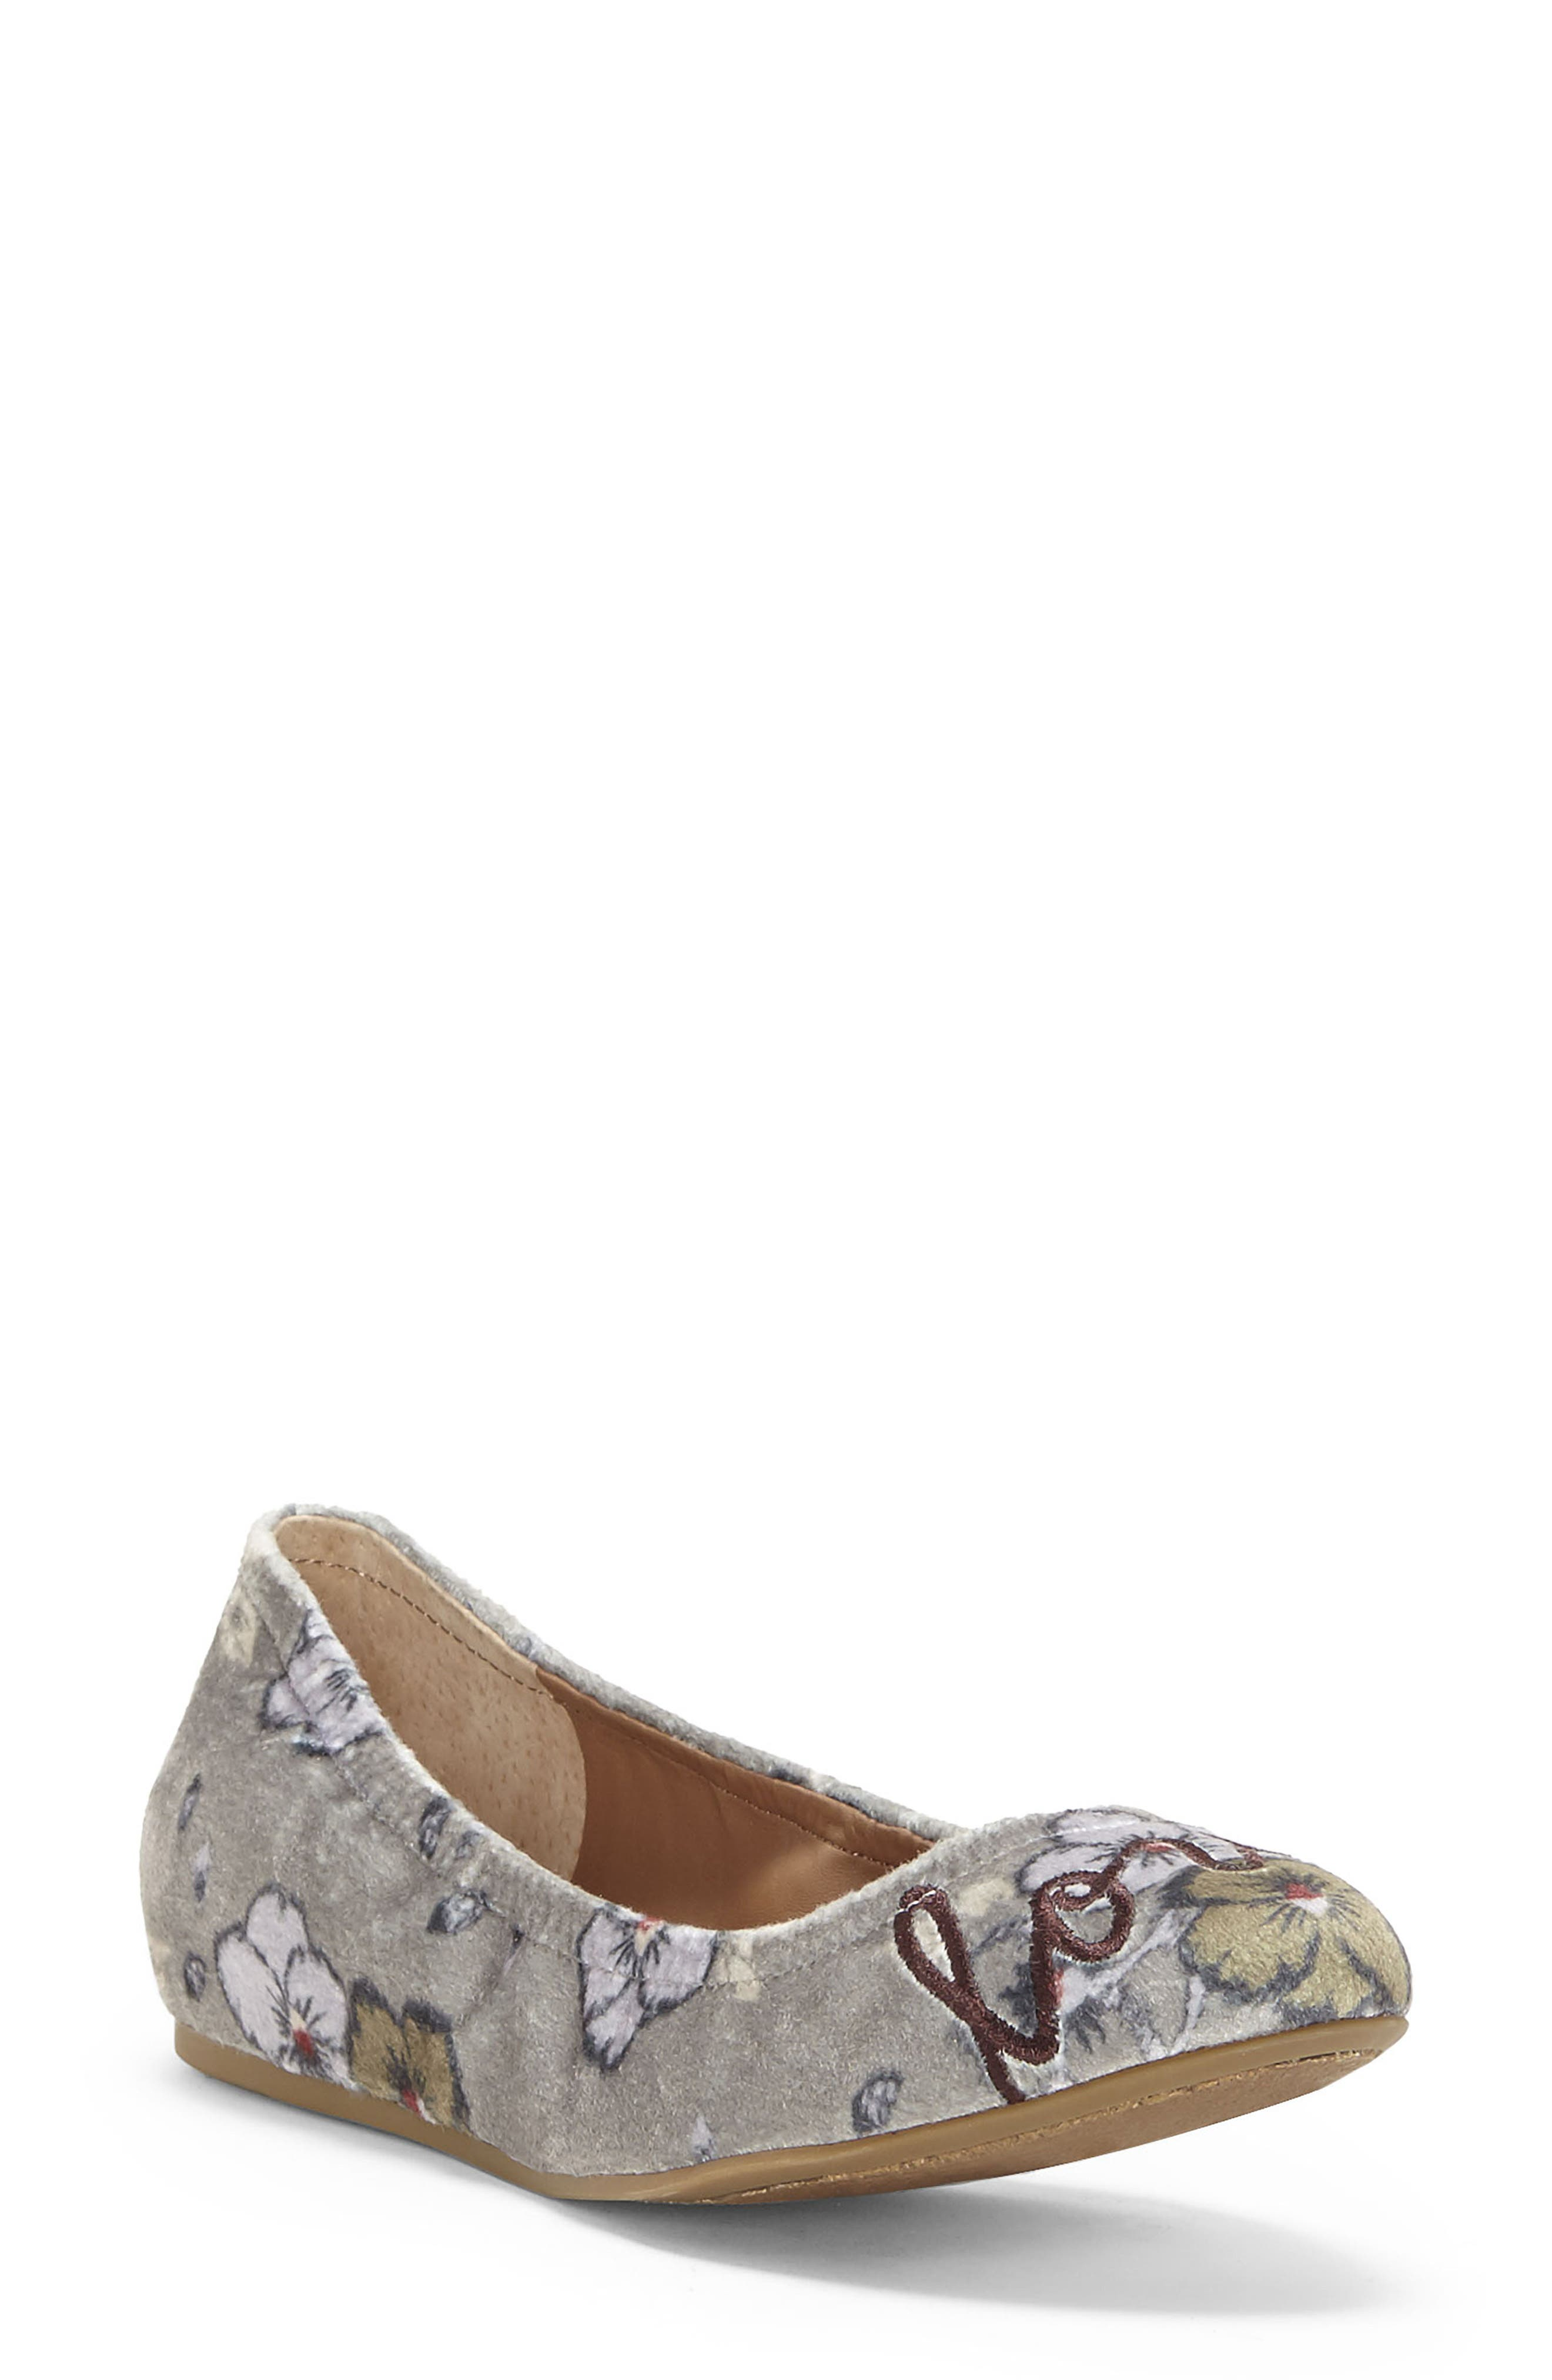 'Langston' Ballet Flat,                         Main,                         color, Light Shadow Leather